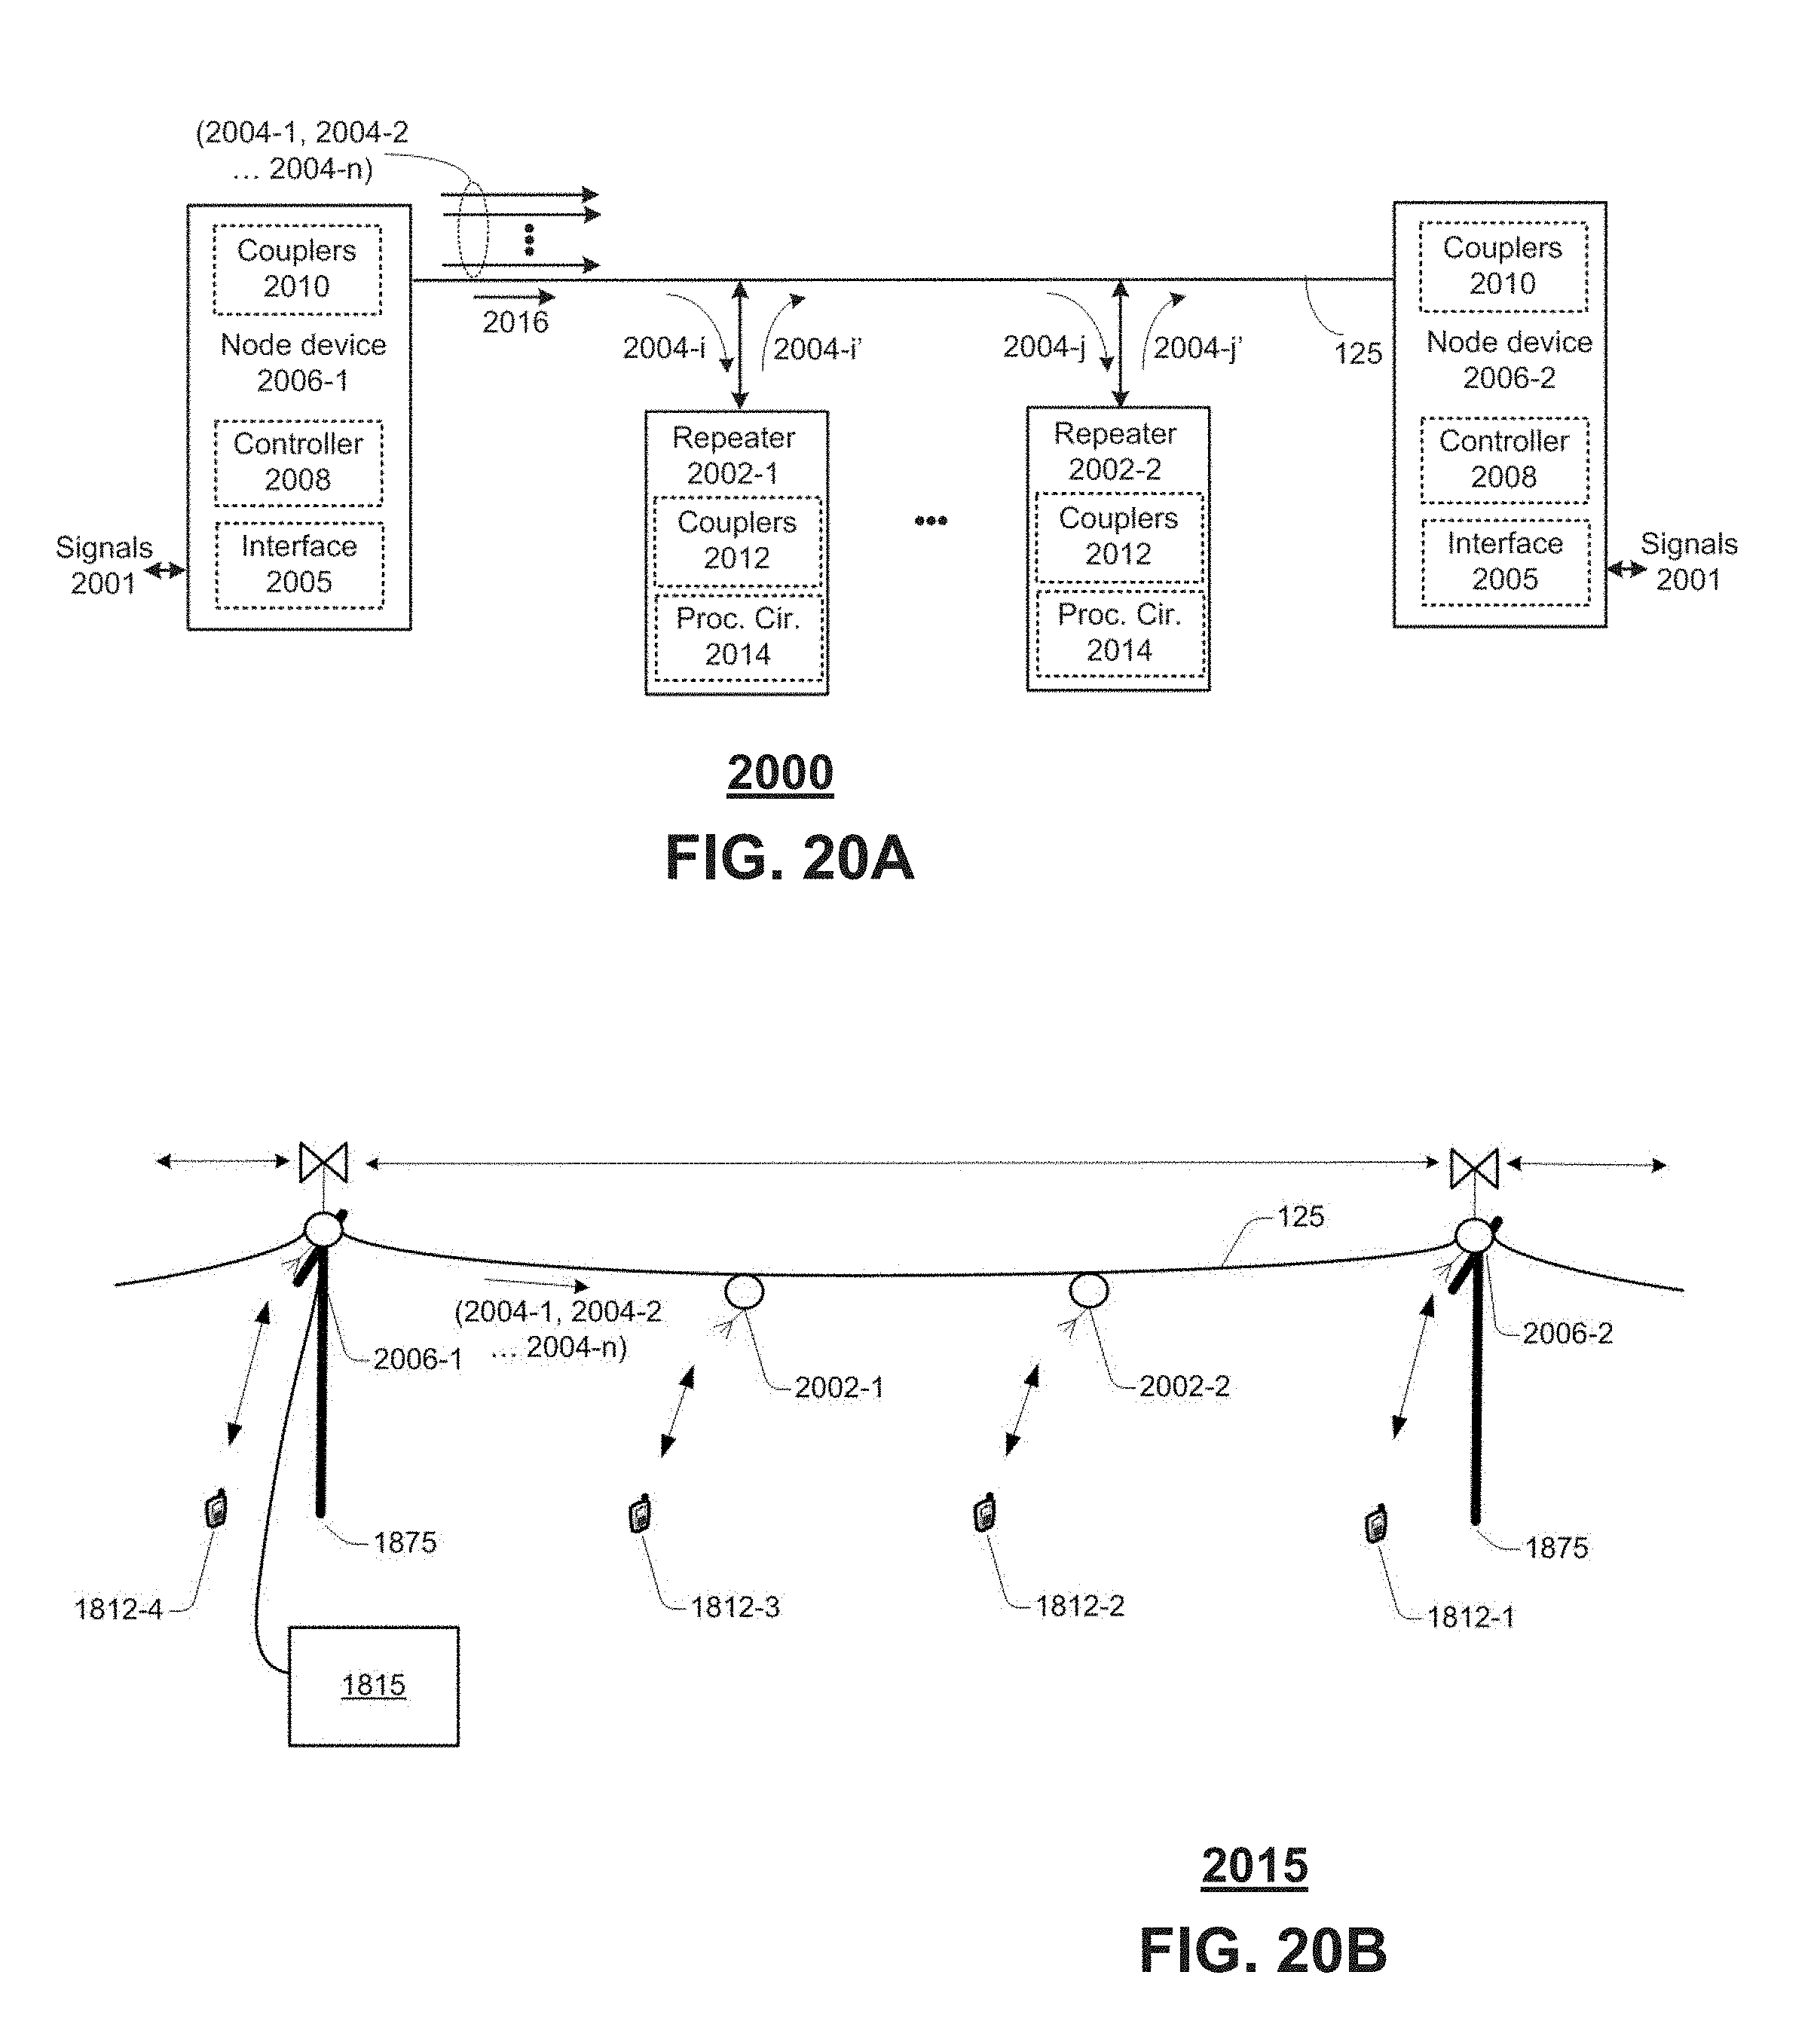 Us9749053b2 Node Device Repeater And Methods For Use Therewith Transistor Oscillator Circuit Likewise One Tube Cw Transmitter As Well Google Patents